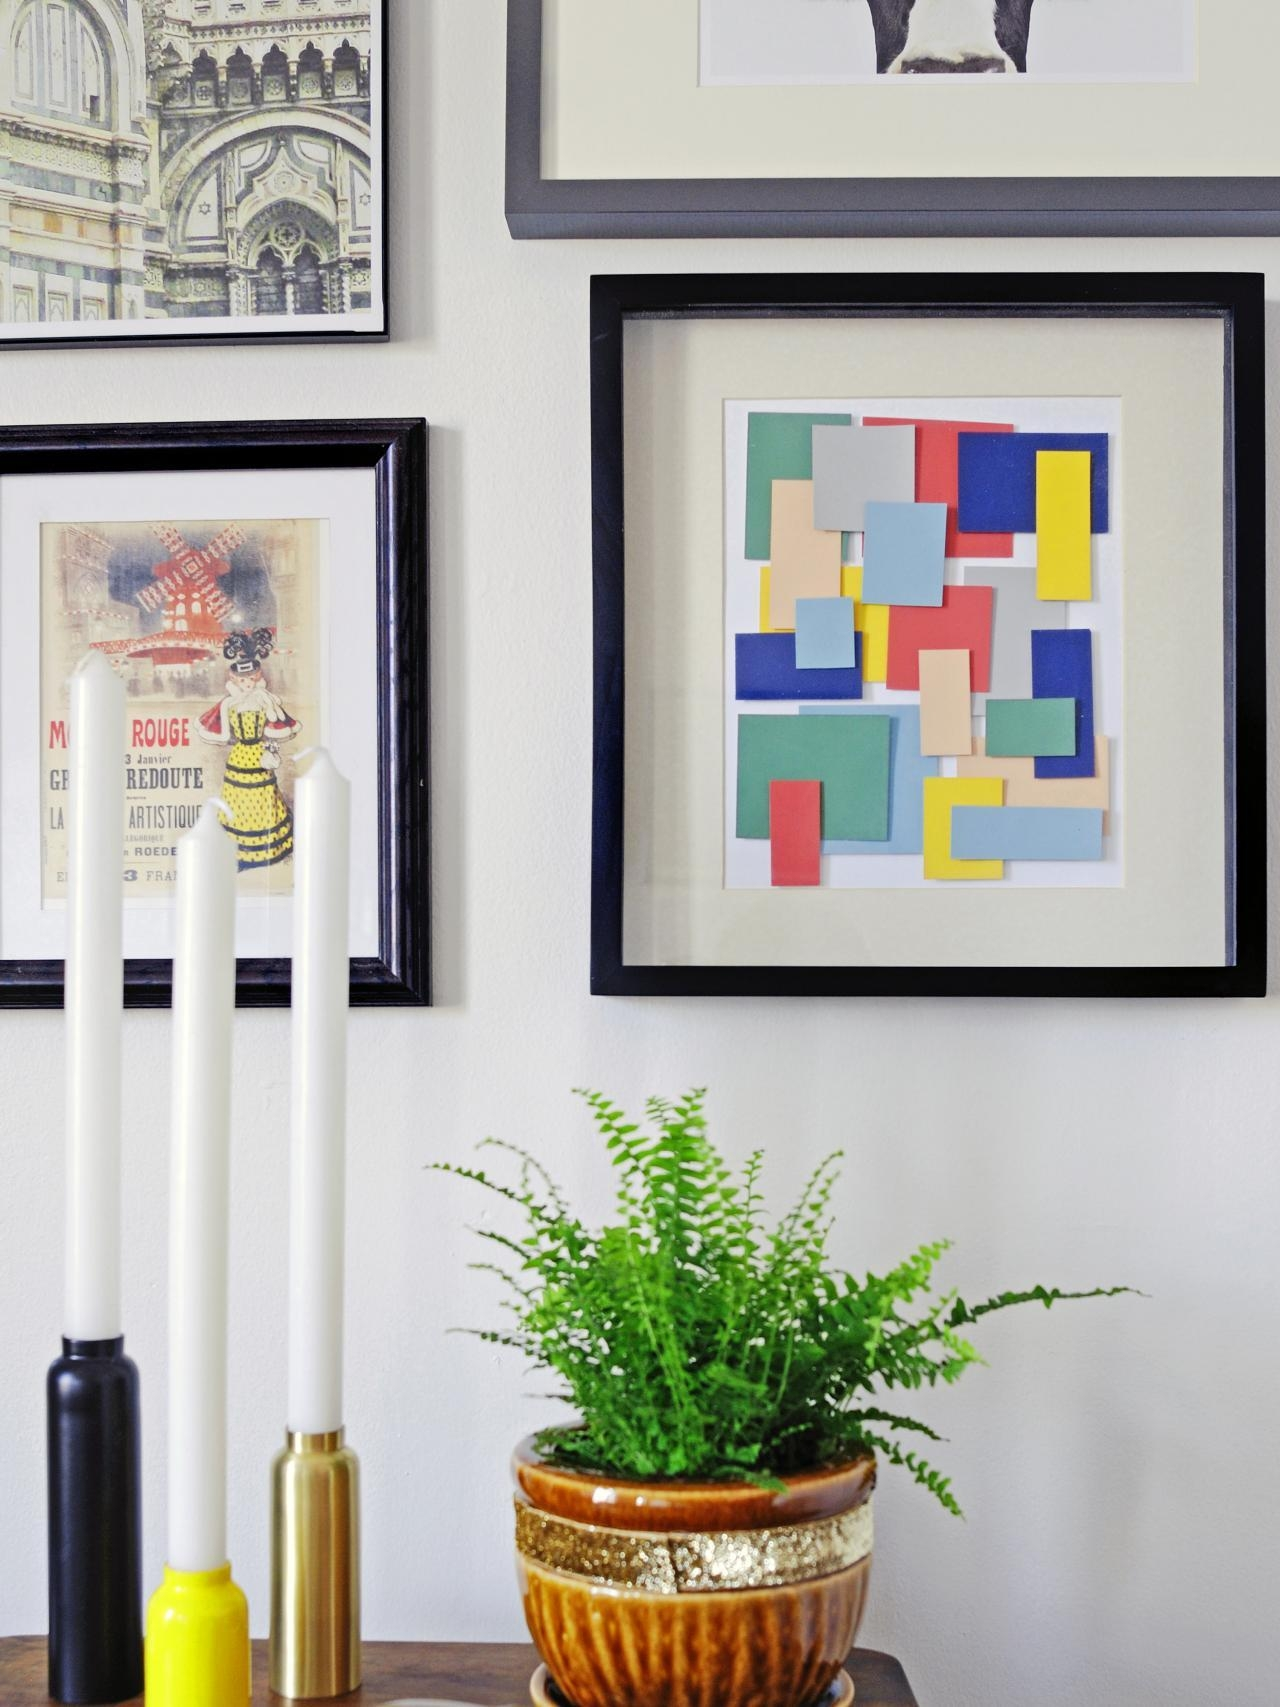 Turn Paint Chips Into Geometric Diy Wall Art | Hgtv In Turn Pictures Into Wall Art (Image 15 of 20)